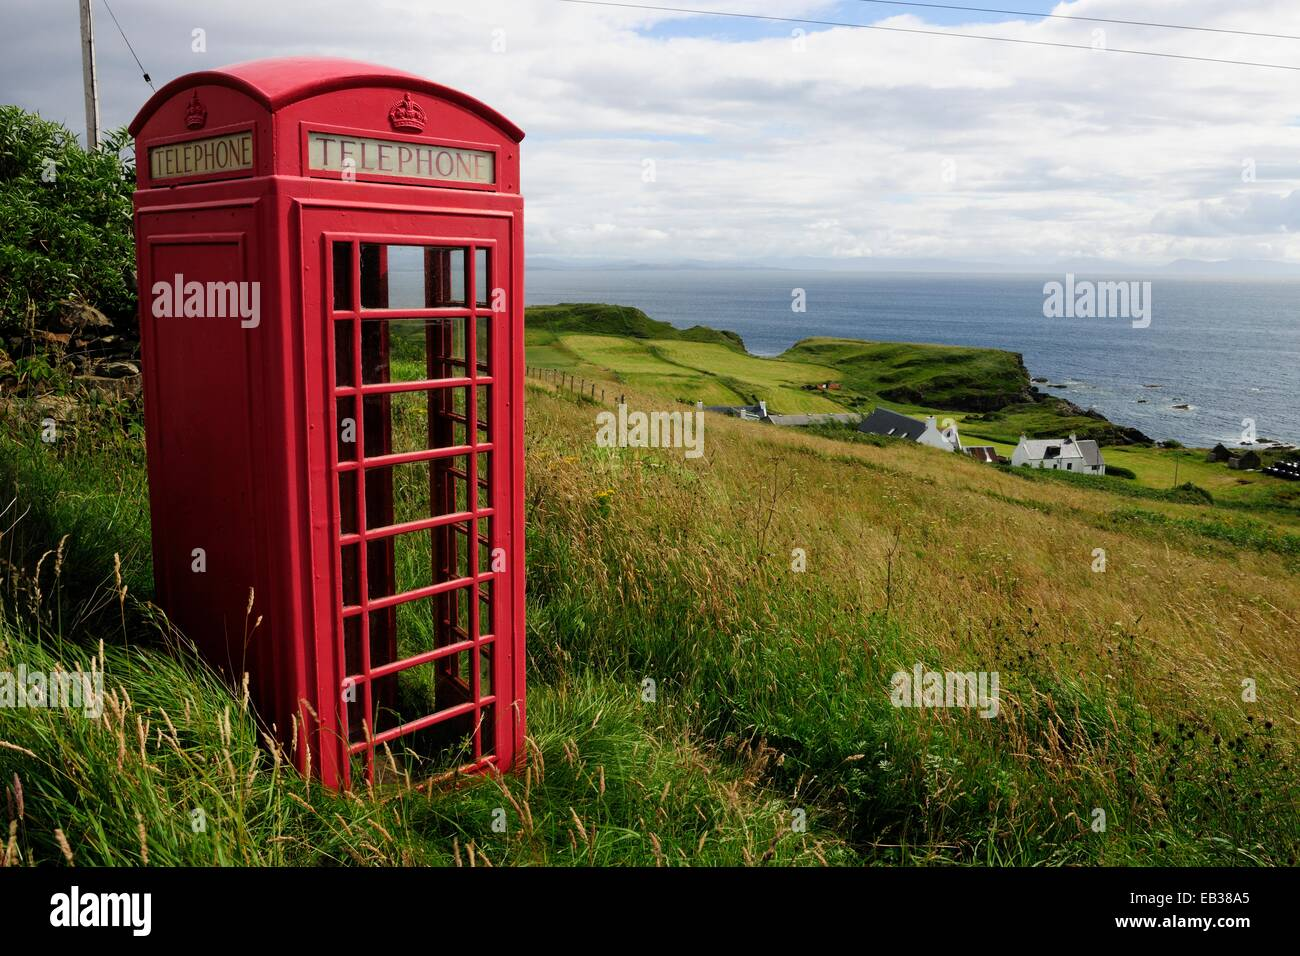 English phone booth in the middle of the countryside, Isle of Mull, Scotland, United Kingdom Stock Photo